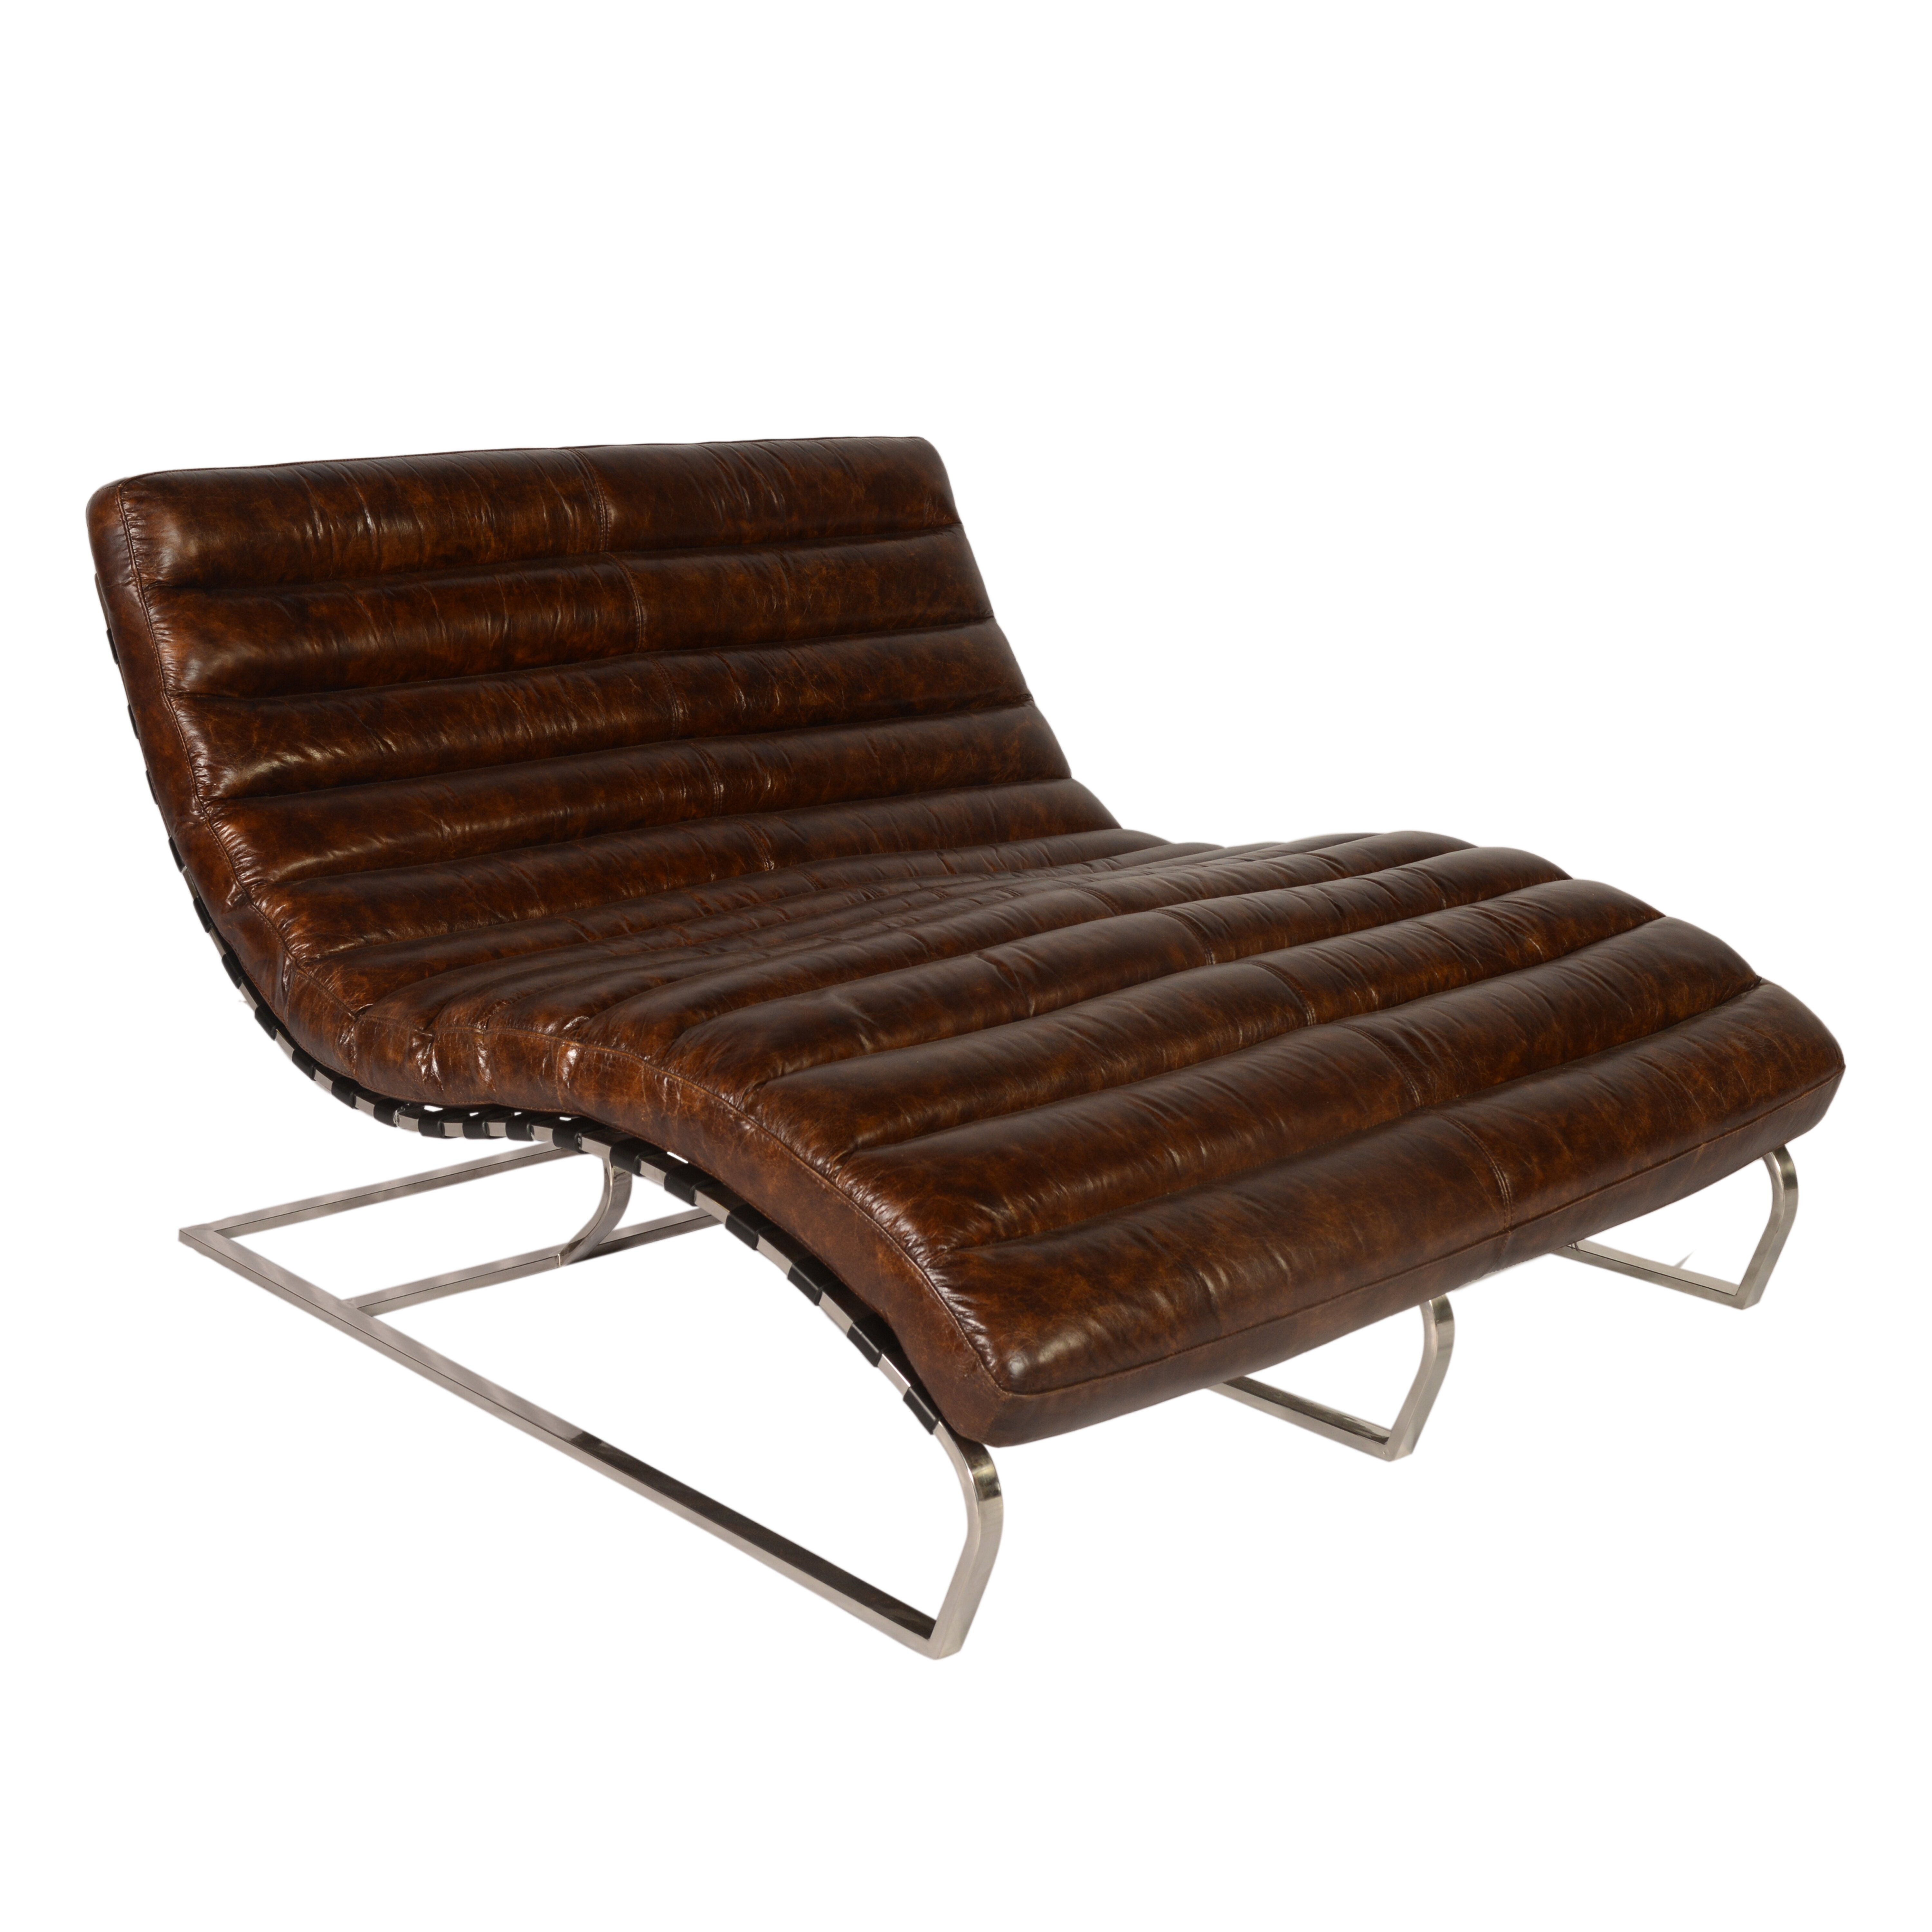 Lazzaro leather perici leather double chaise lounge wayfair for Chaise double lounge